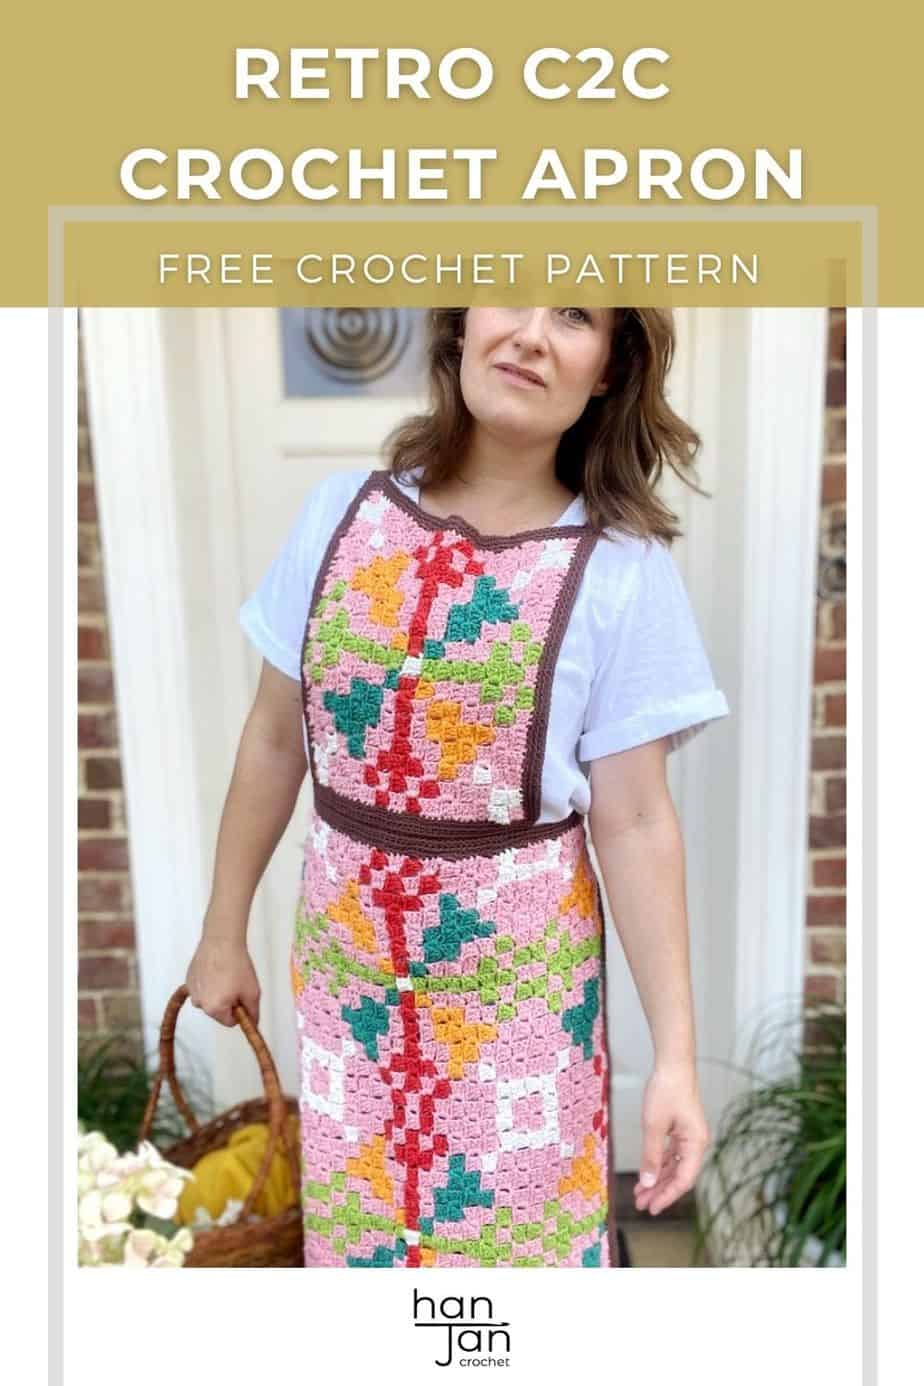 woman looking forward holding basket wearing white shirt and crochet apron